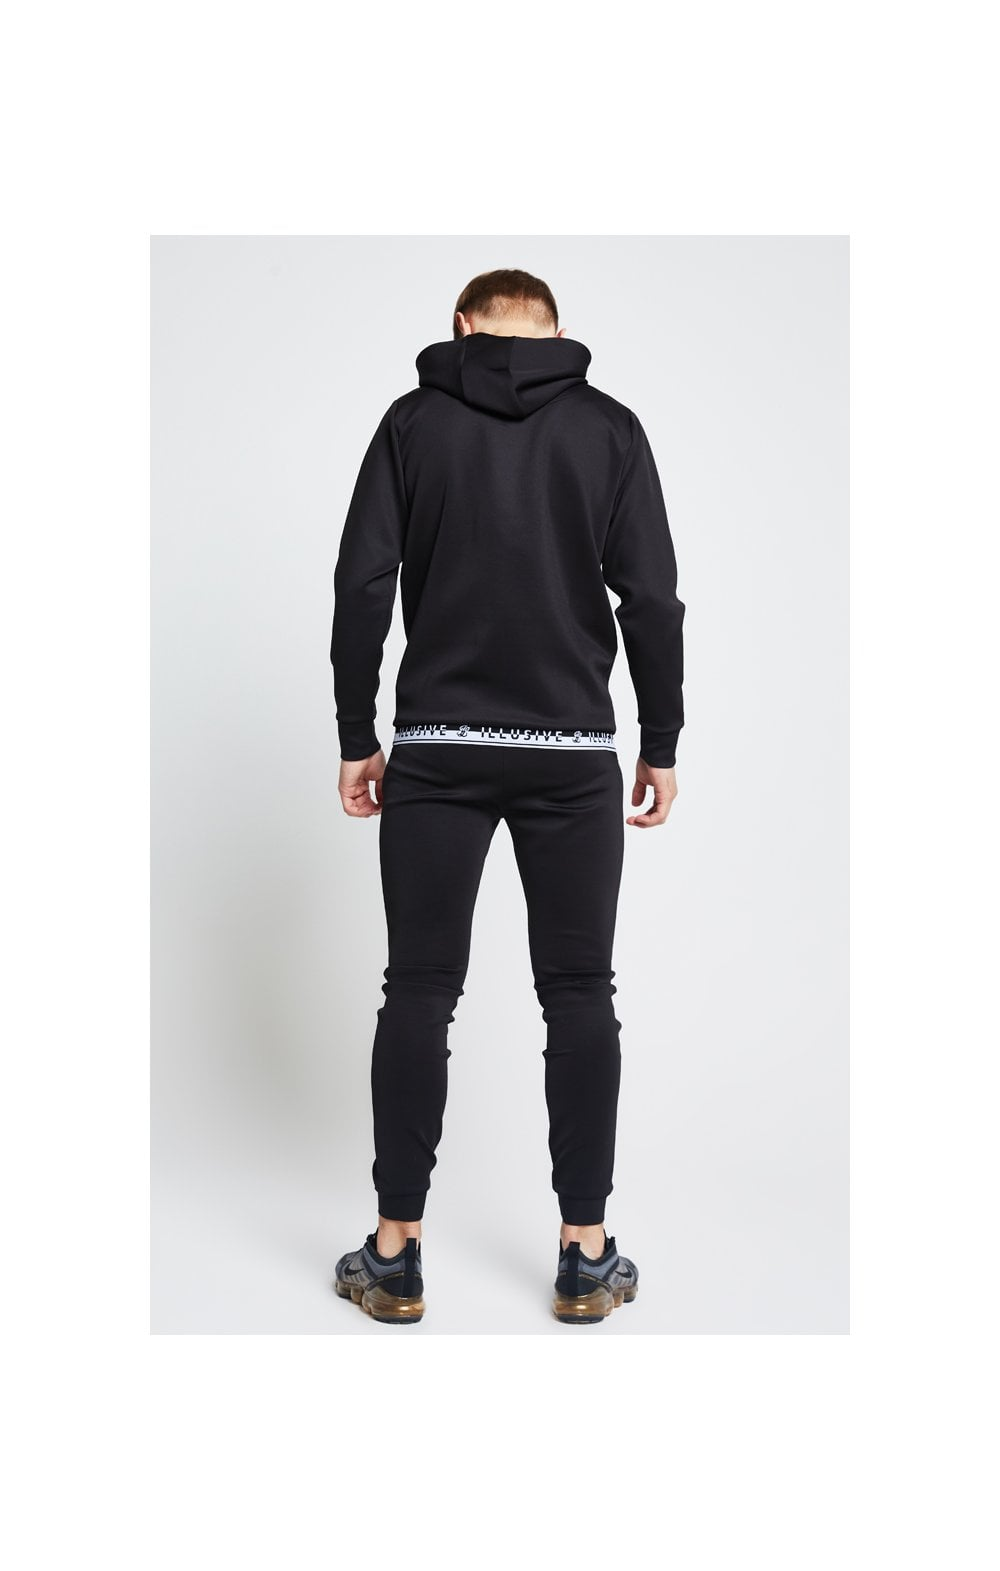 Illusive London Taped Overhead Hoodie - Black (5)